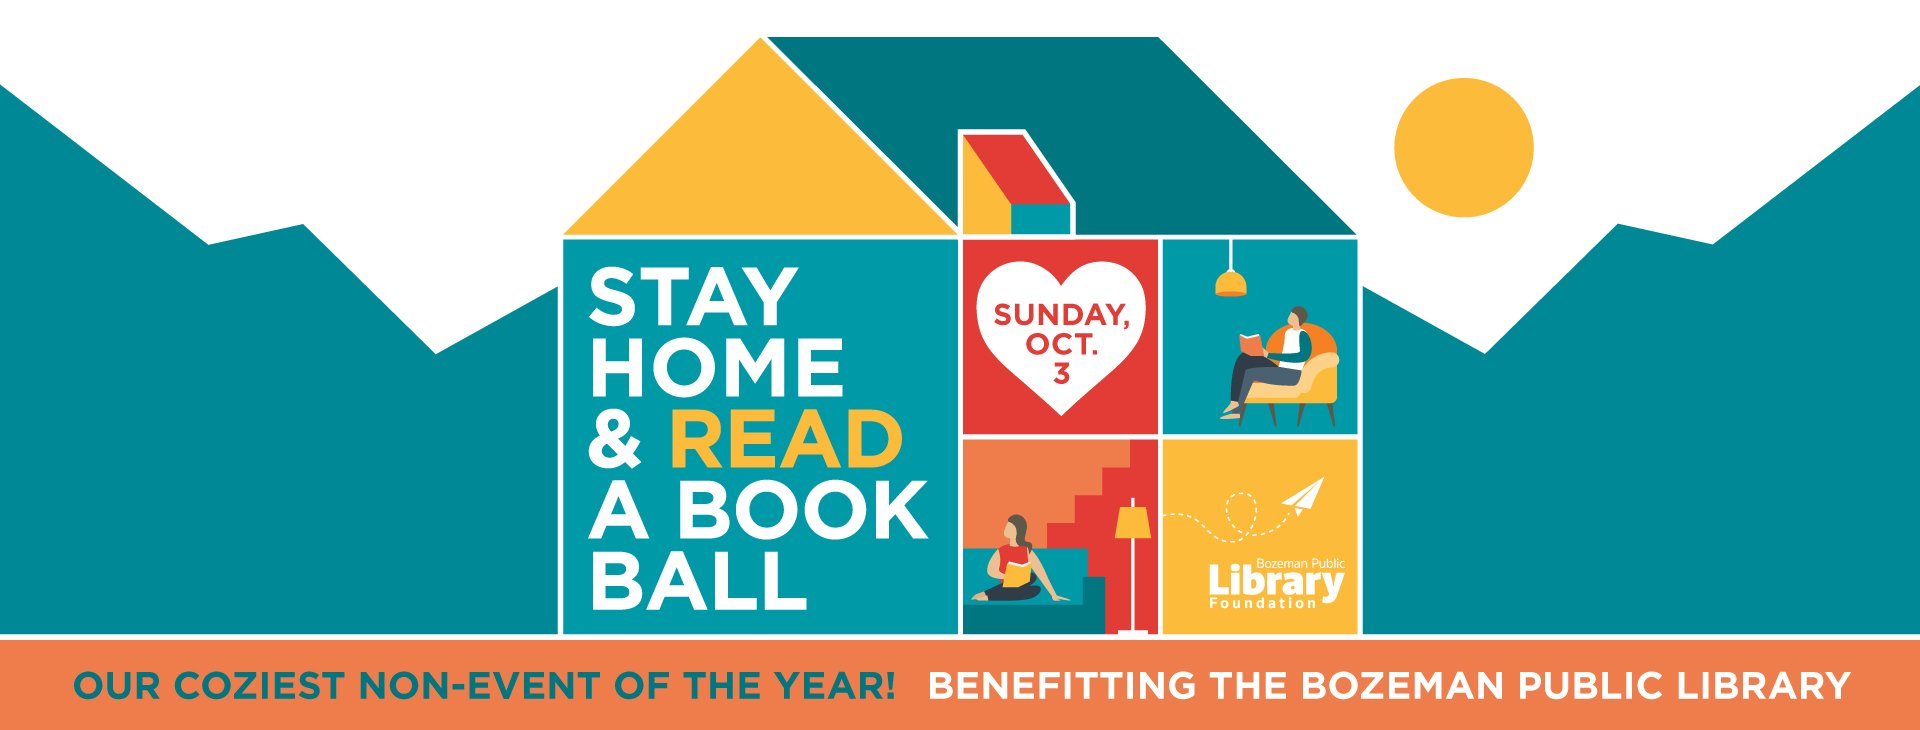 Stay Home and Read a Book Ball Oct 2021 graphic